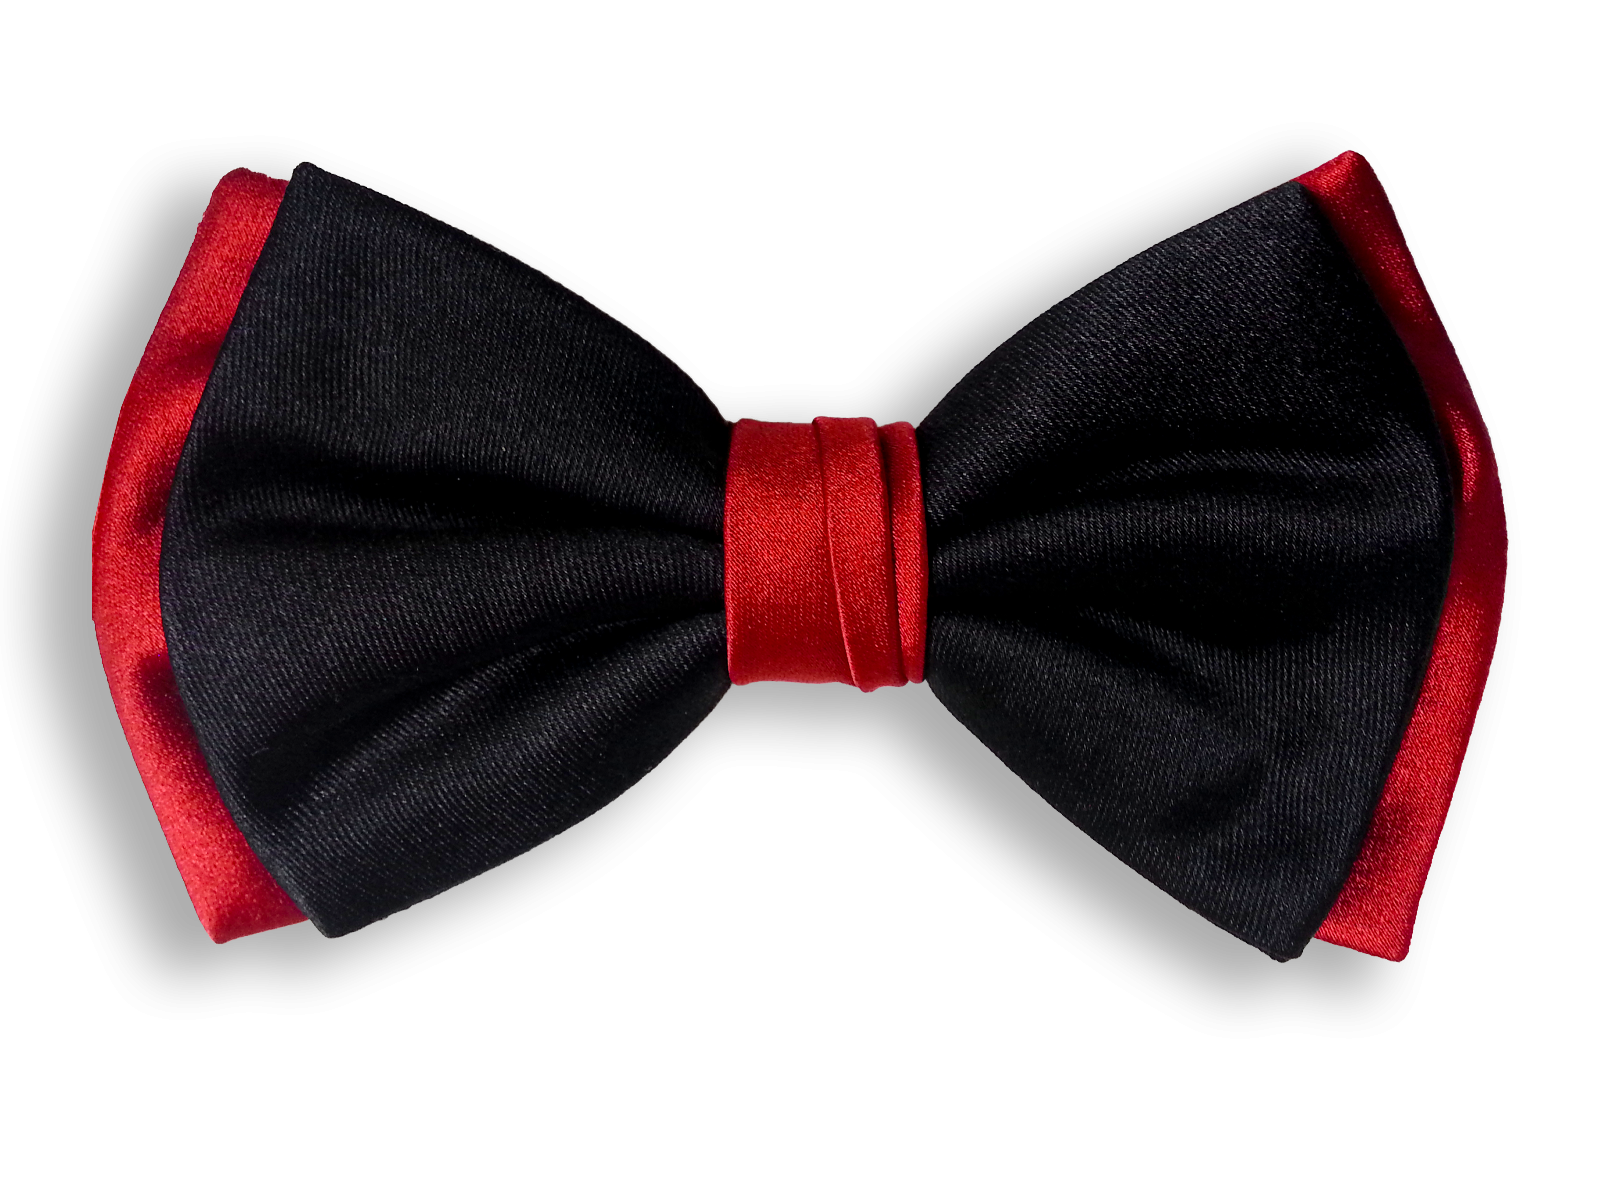 Red bow tie png. Black basic with background